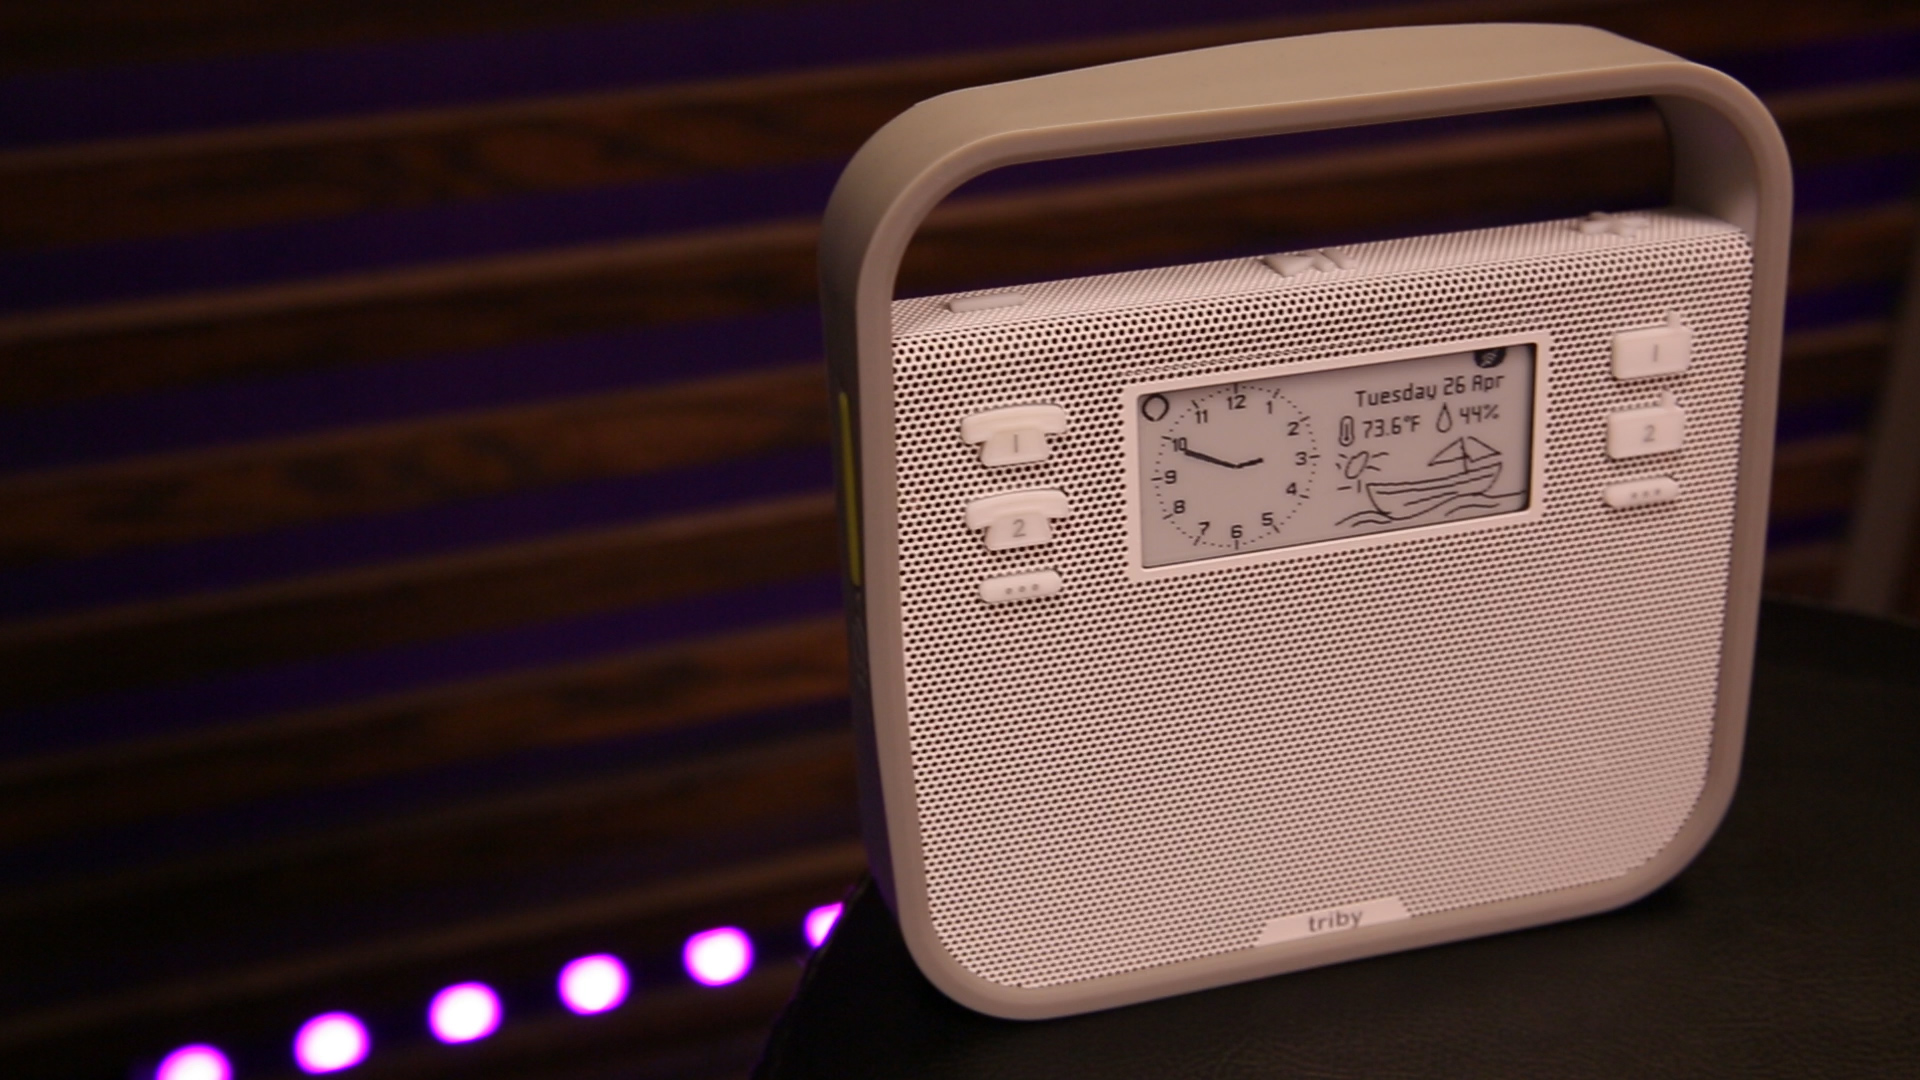 Video: The fridge-friendly Triby smart speaker adds Alexa